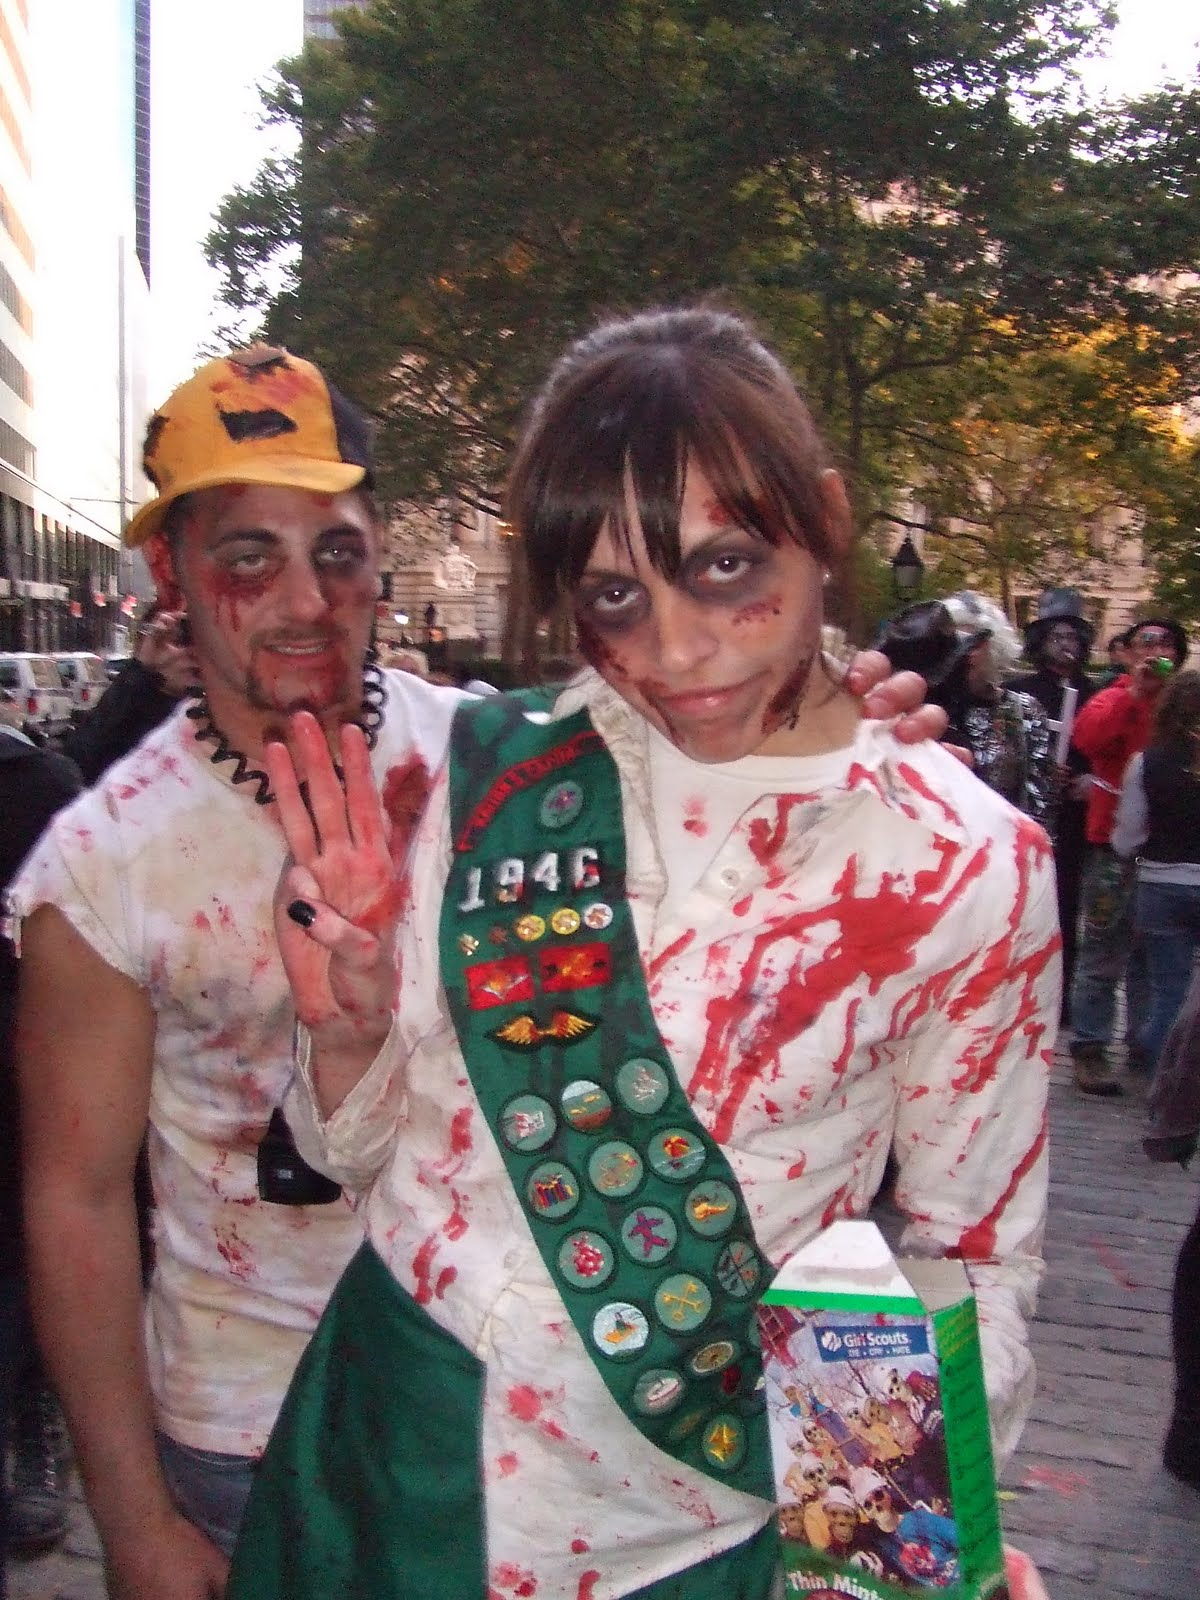 Kostumegirls closet how to zombify yourself making a zombie one thing to consider is when a living person is transformed into a zombie or infected they will stuck forever wearing the clothing they were wearing at solutioingenieria Images